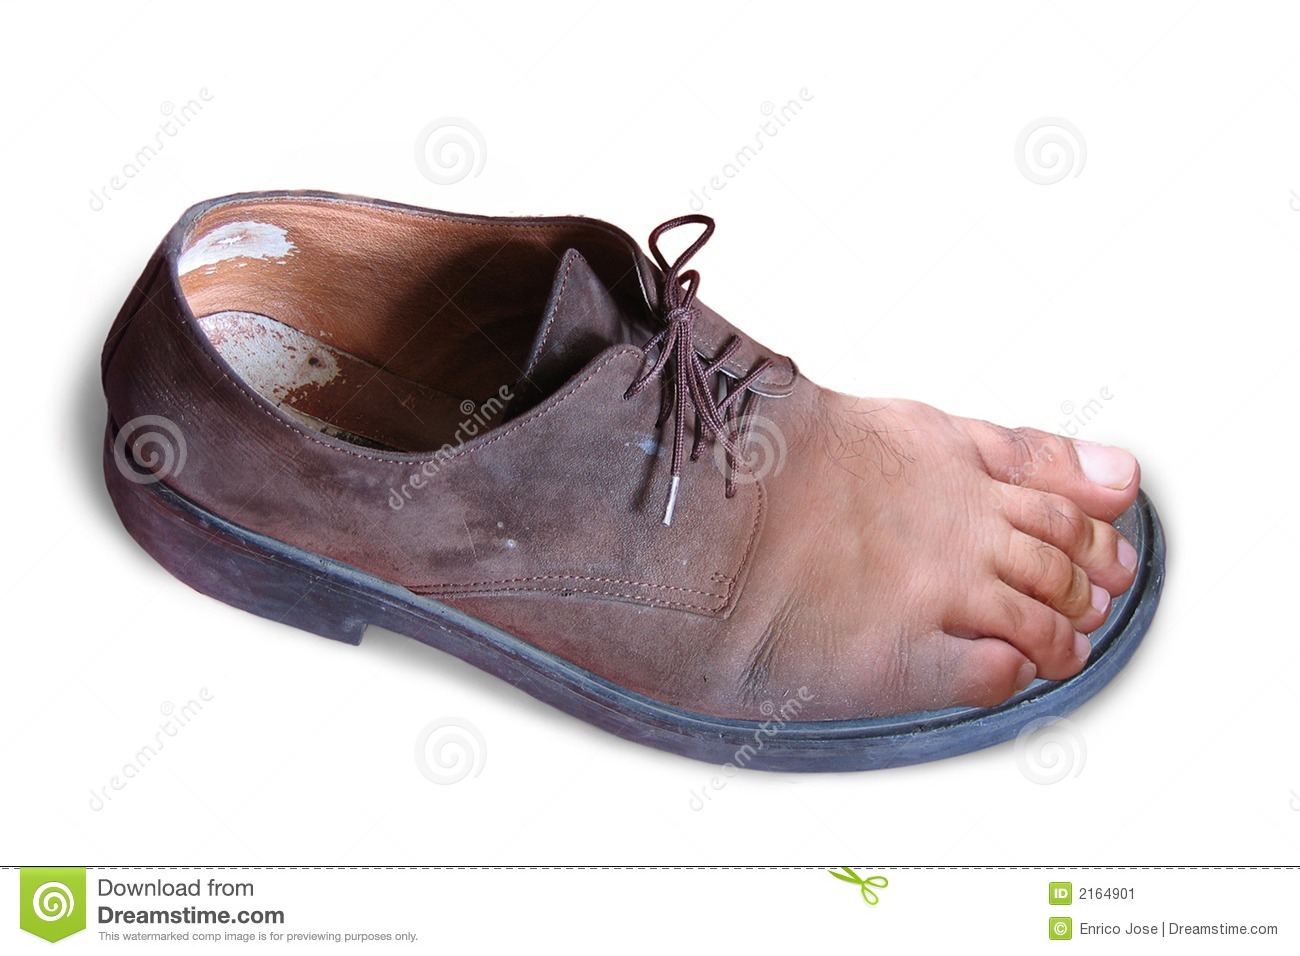 Foot and shoe